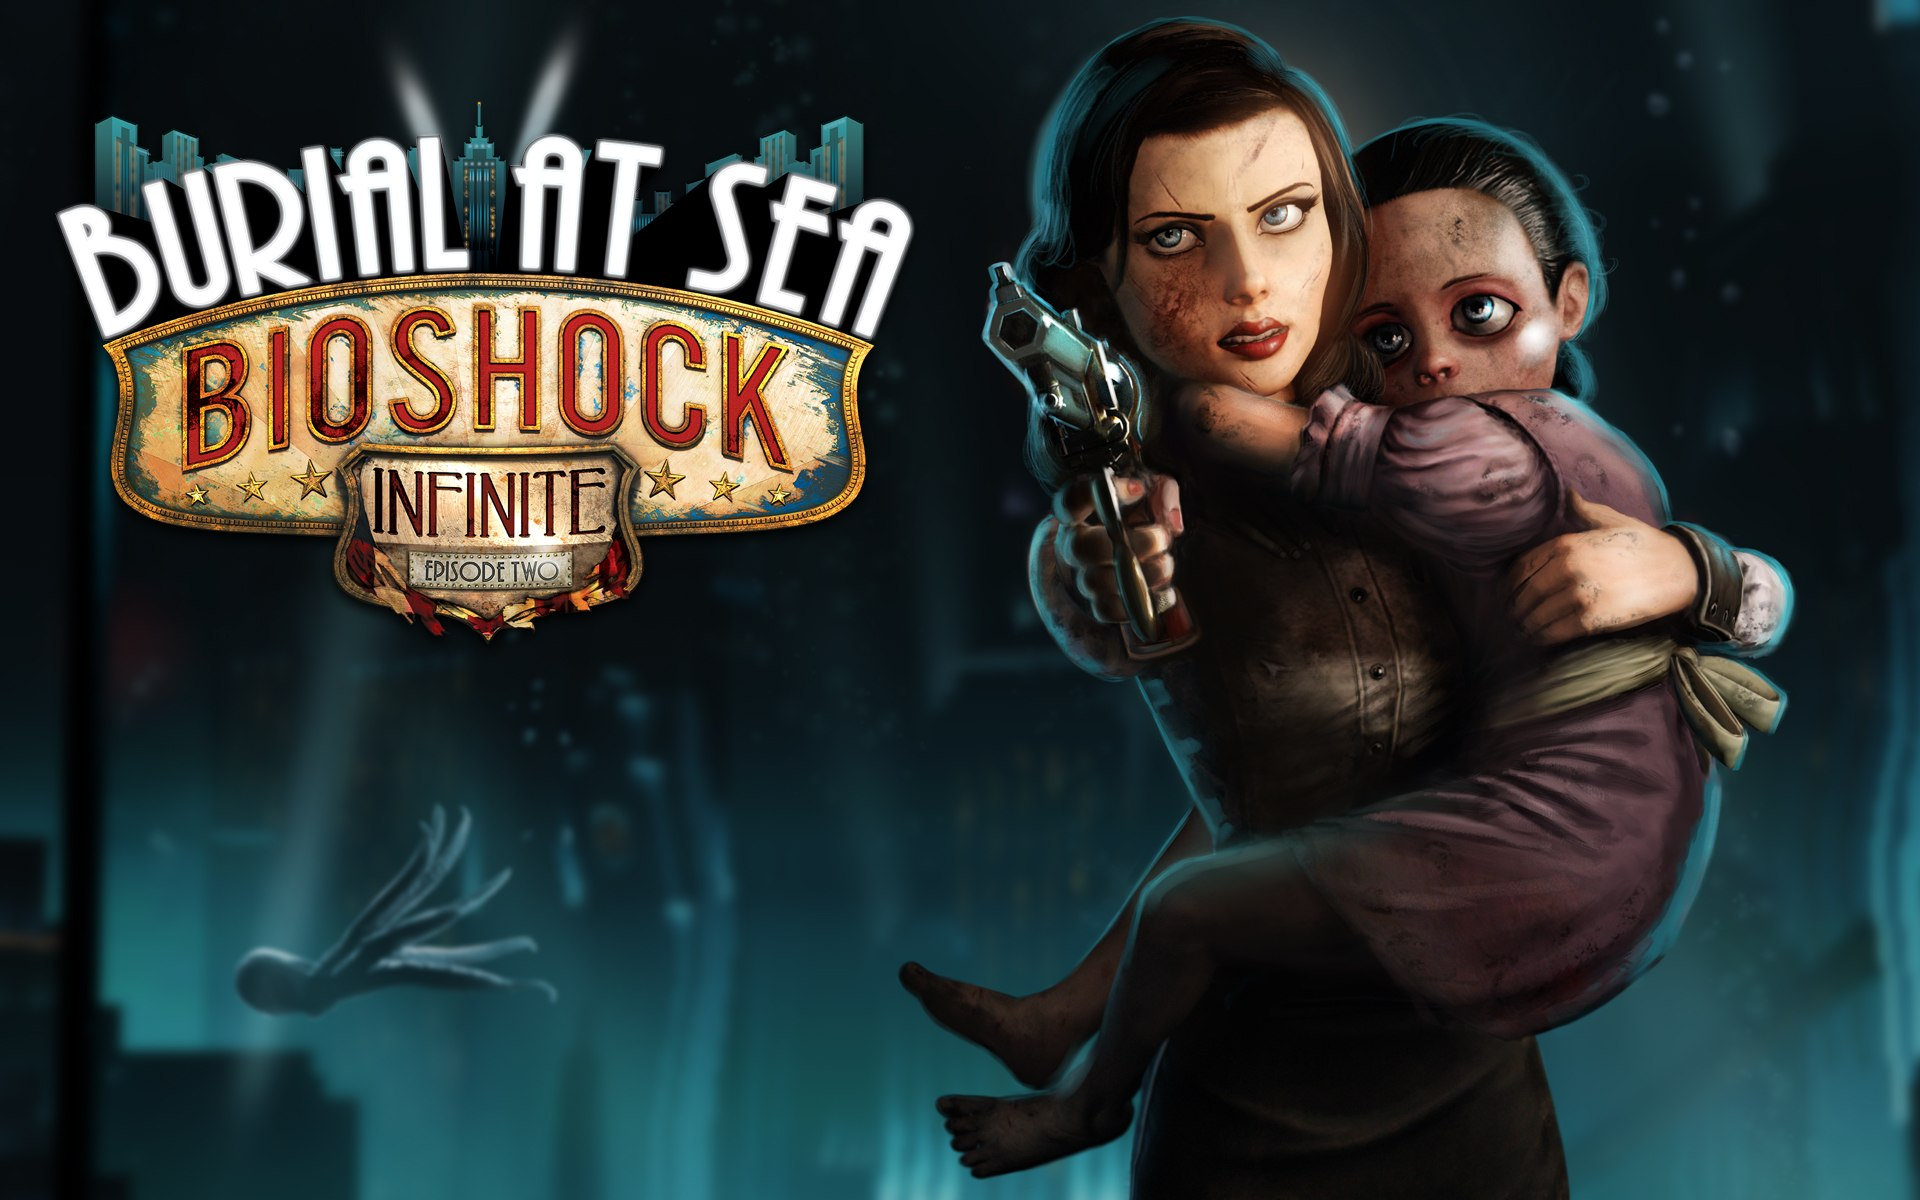 Bioshock Infinite Episode Two Burial at Sea wallpaper